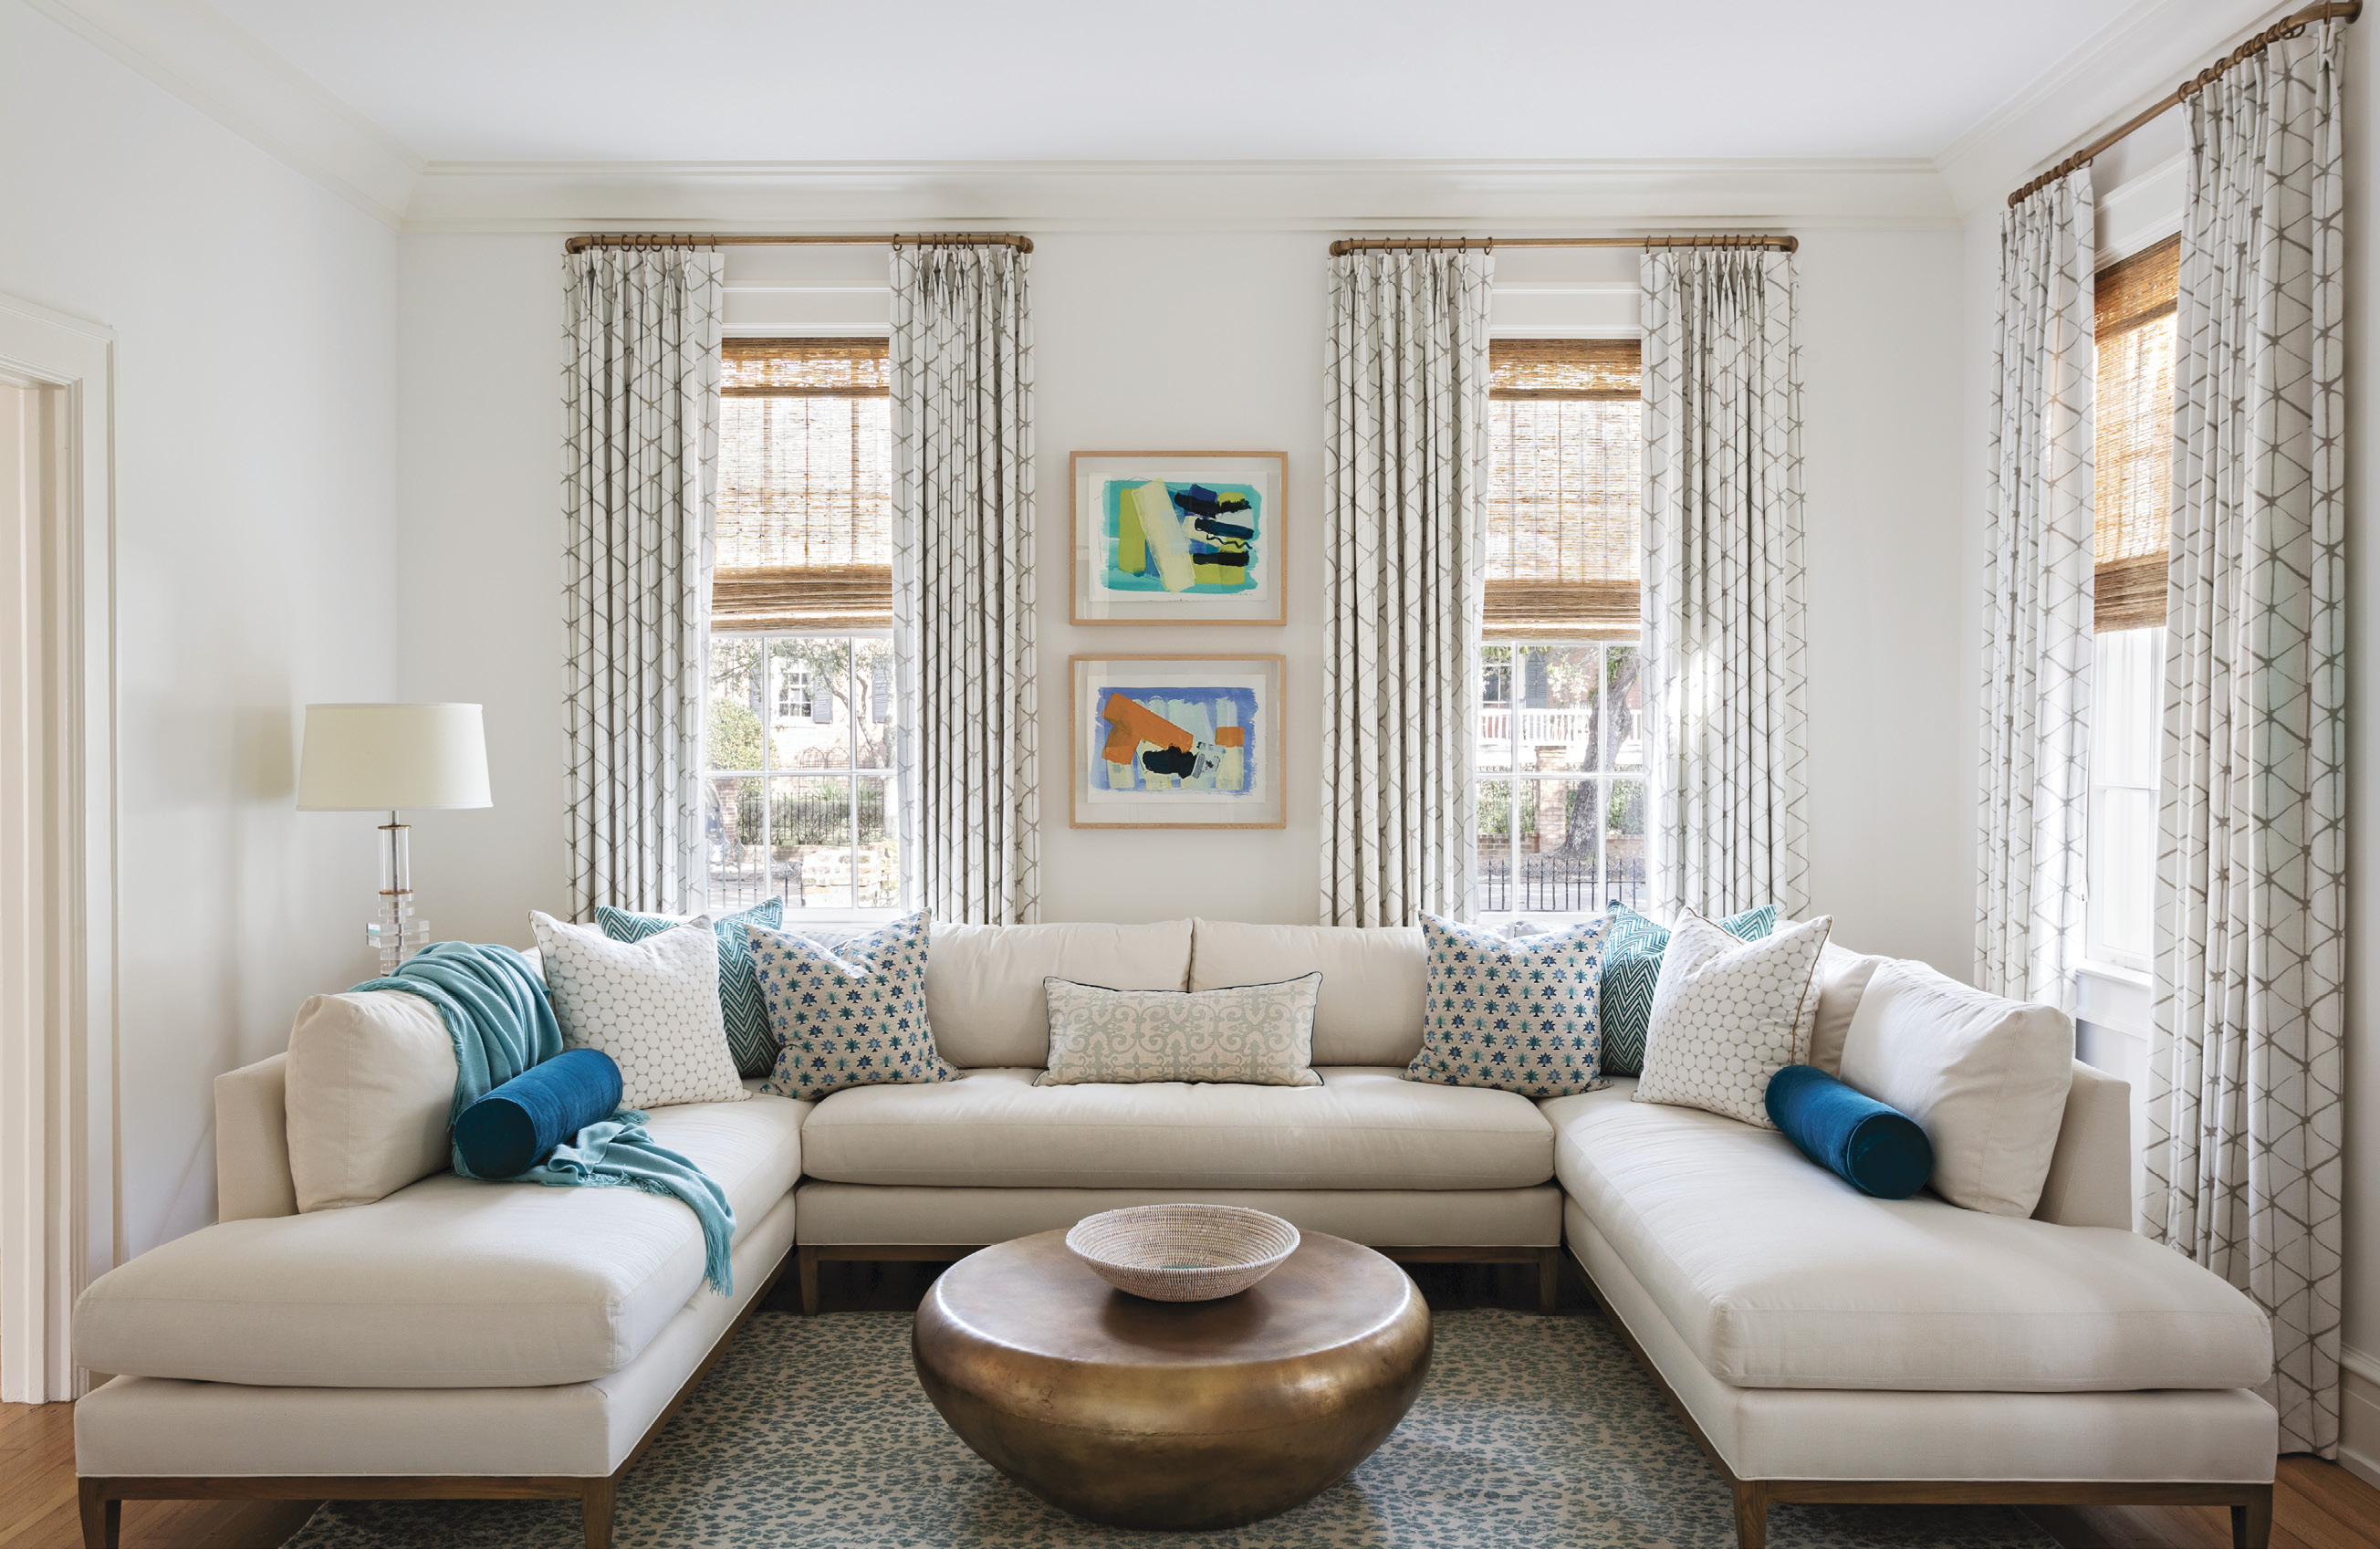 COORDINATED COMFORT: In the laid-back but still stylish family room, a burnt brass-finished cocktail table from Arteriors fills the space in front of the U-shape sectional sofa from Lee Industries. Sally King Benedict paintings, along with scattered throw pillows encased in fabrics from Pierre Frey, Mally Skok Design, and Villa Nova, add color.